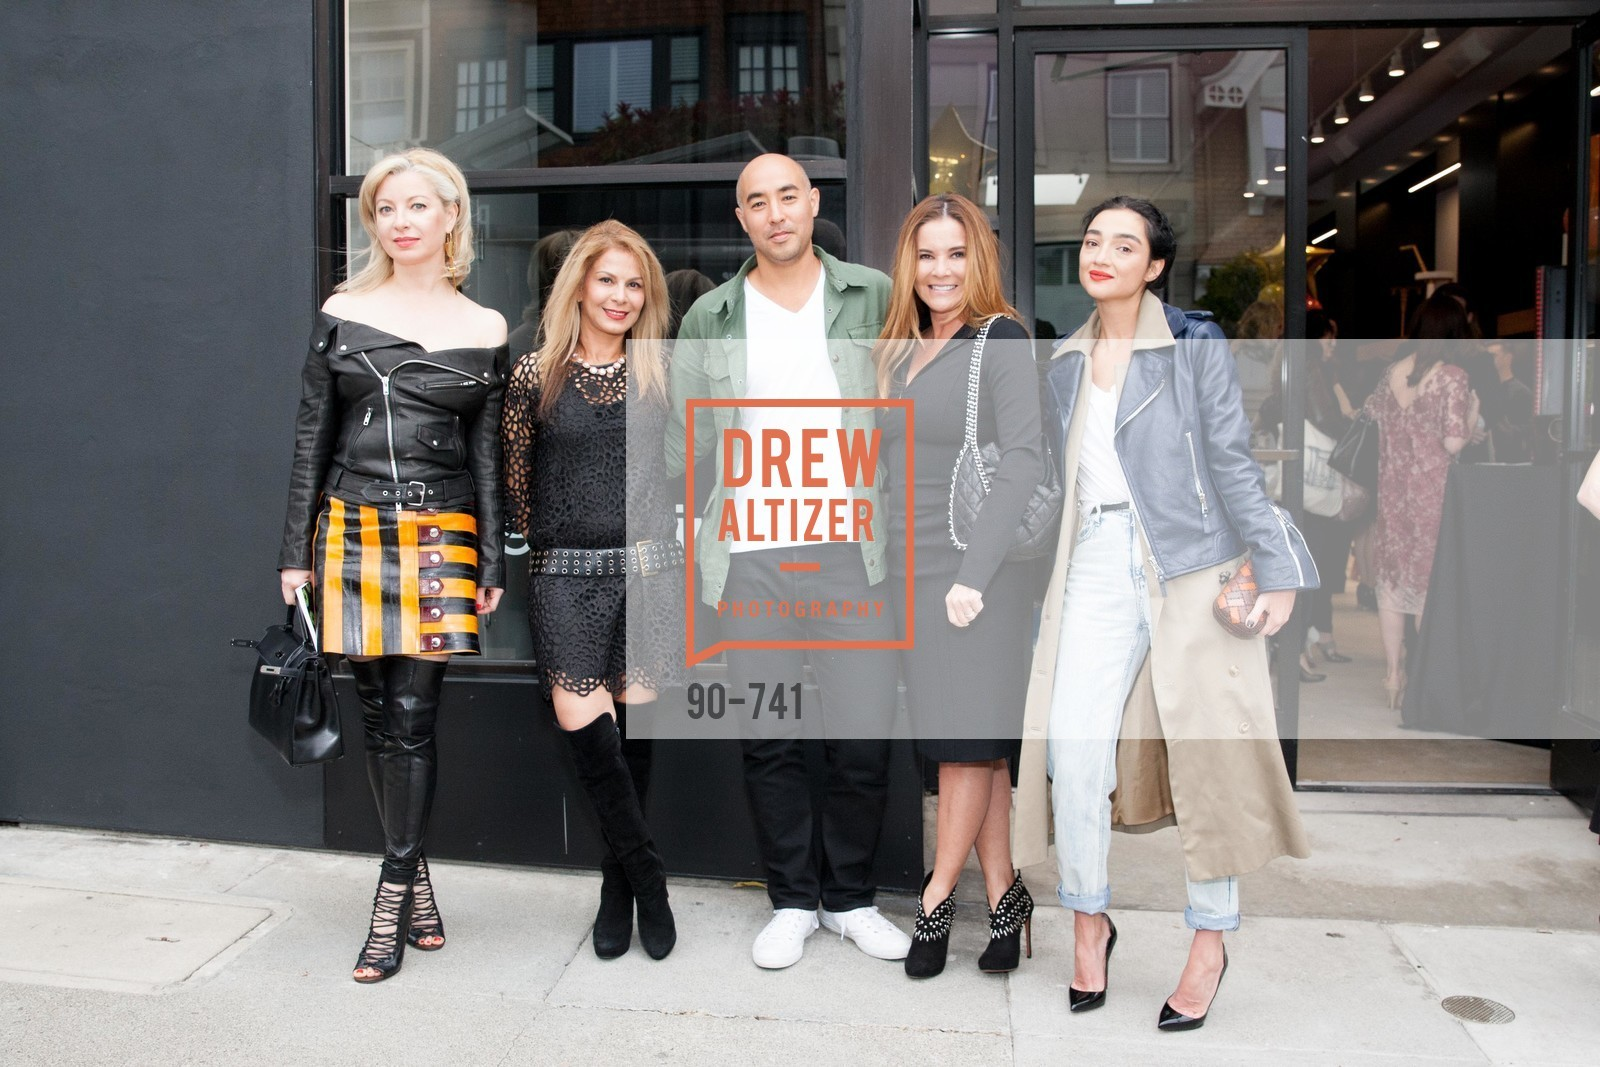 Sonya Molodetskaya, Ladan Mozafar, Max Osterweis, Judy Davies, Olya Dzilikhova, BETTY LIN STORE Opening, US, May 21st, 2015,Drew Altizer, Drew Altizer Photography, full-service agency, private events, San Francisco photographer, photographer california